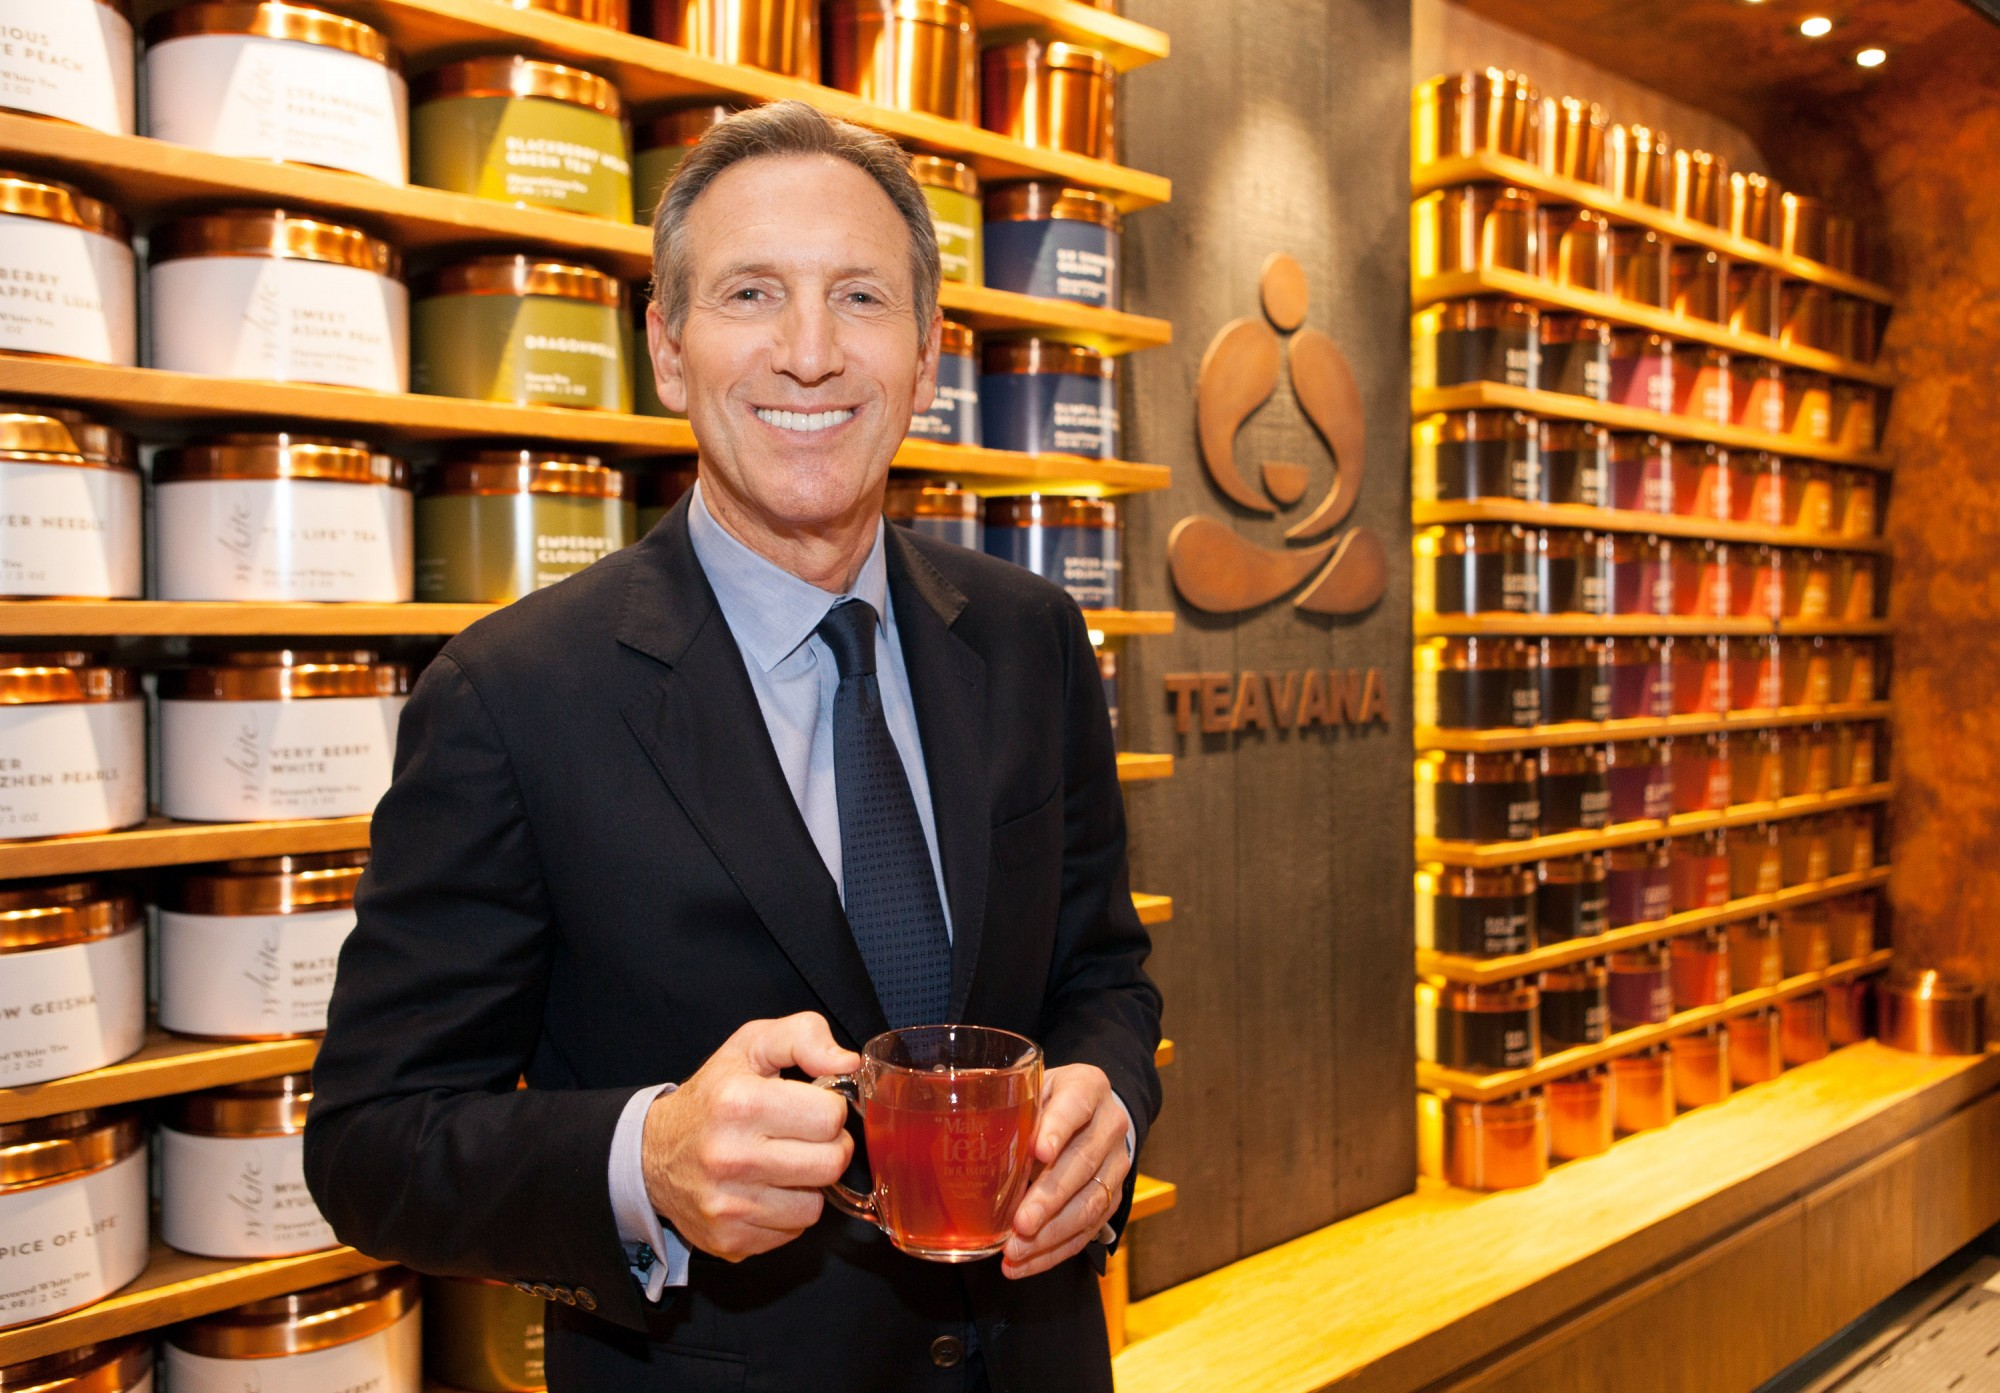 Teavana_Fine_Teas_+Tea_Bar_Howard_Schultz